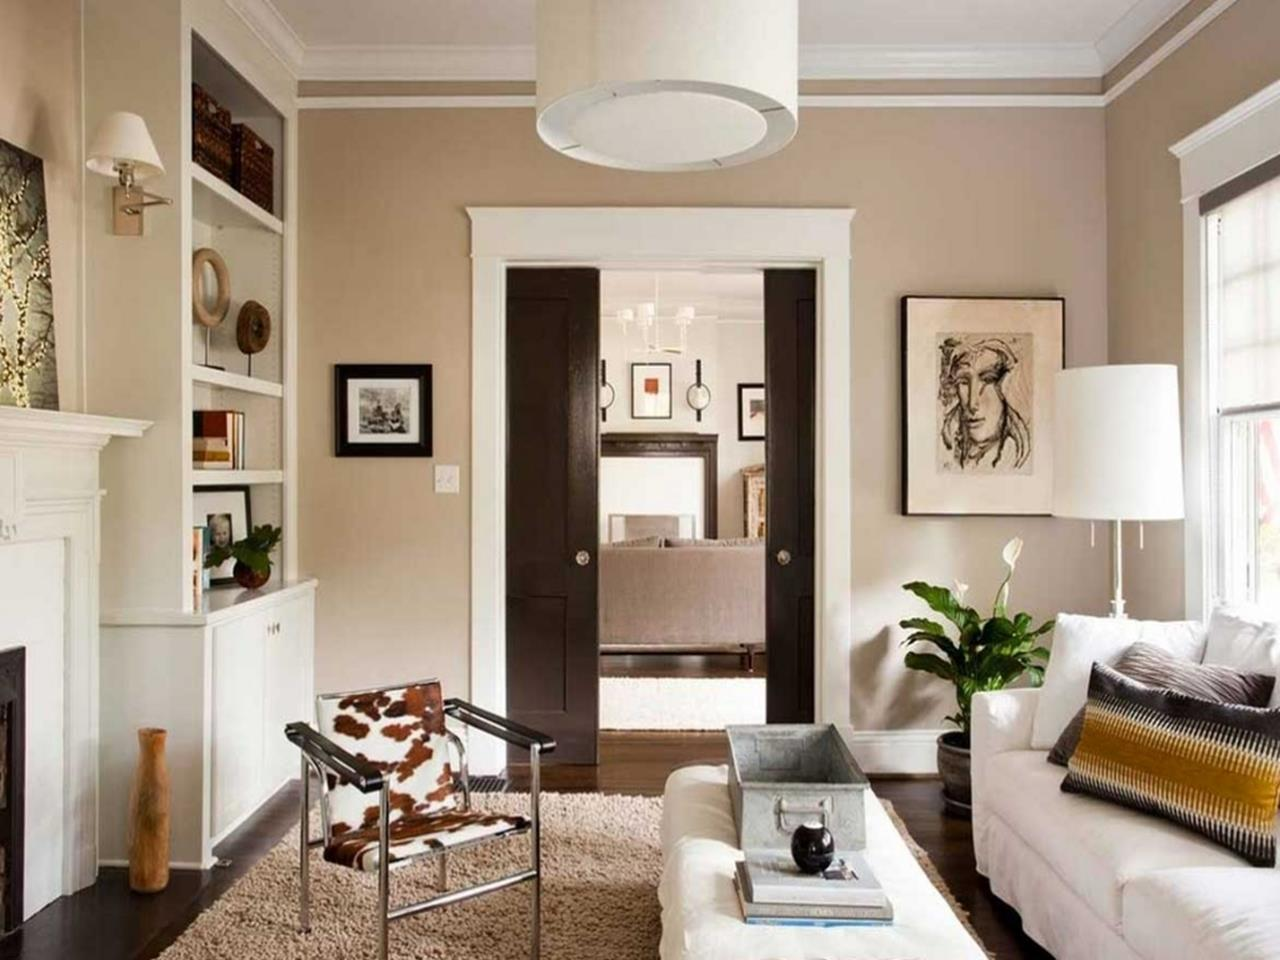 Best Neutral Paint Colors For Living Room 26